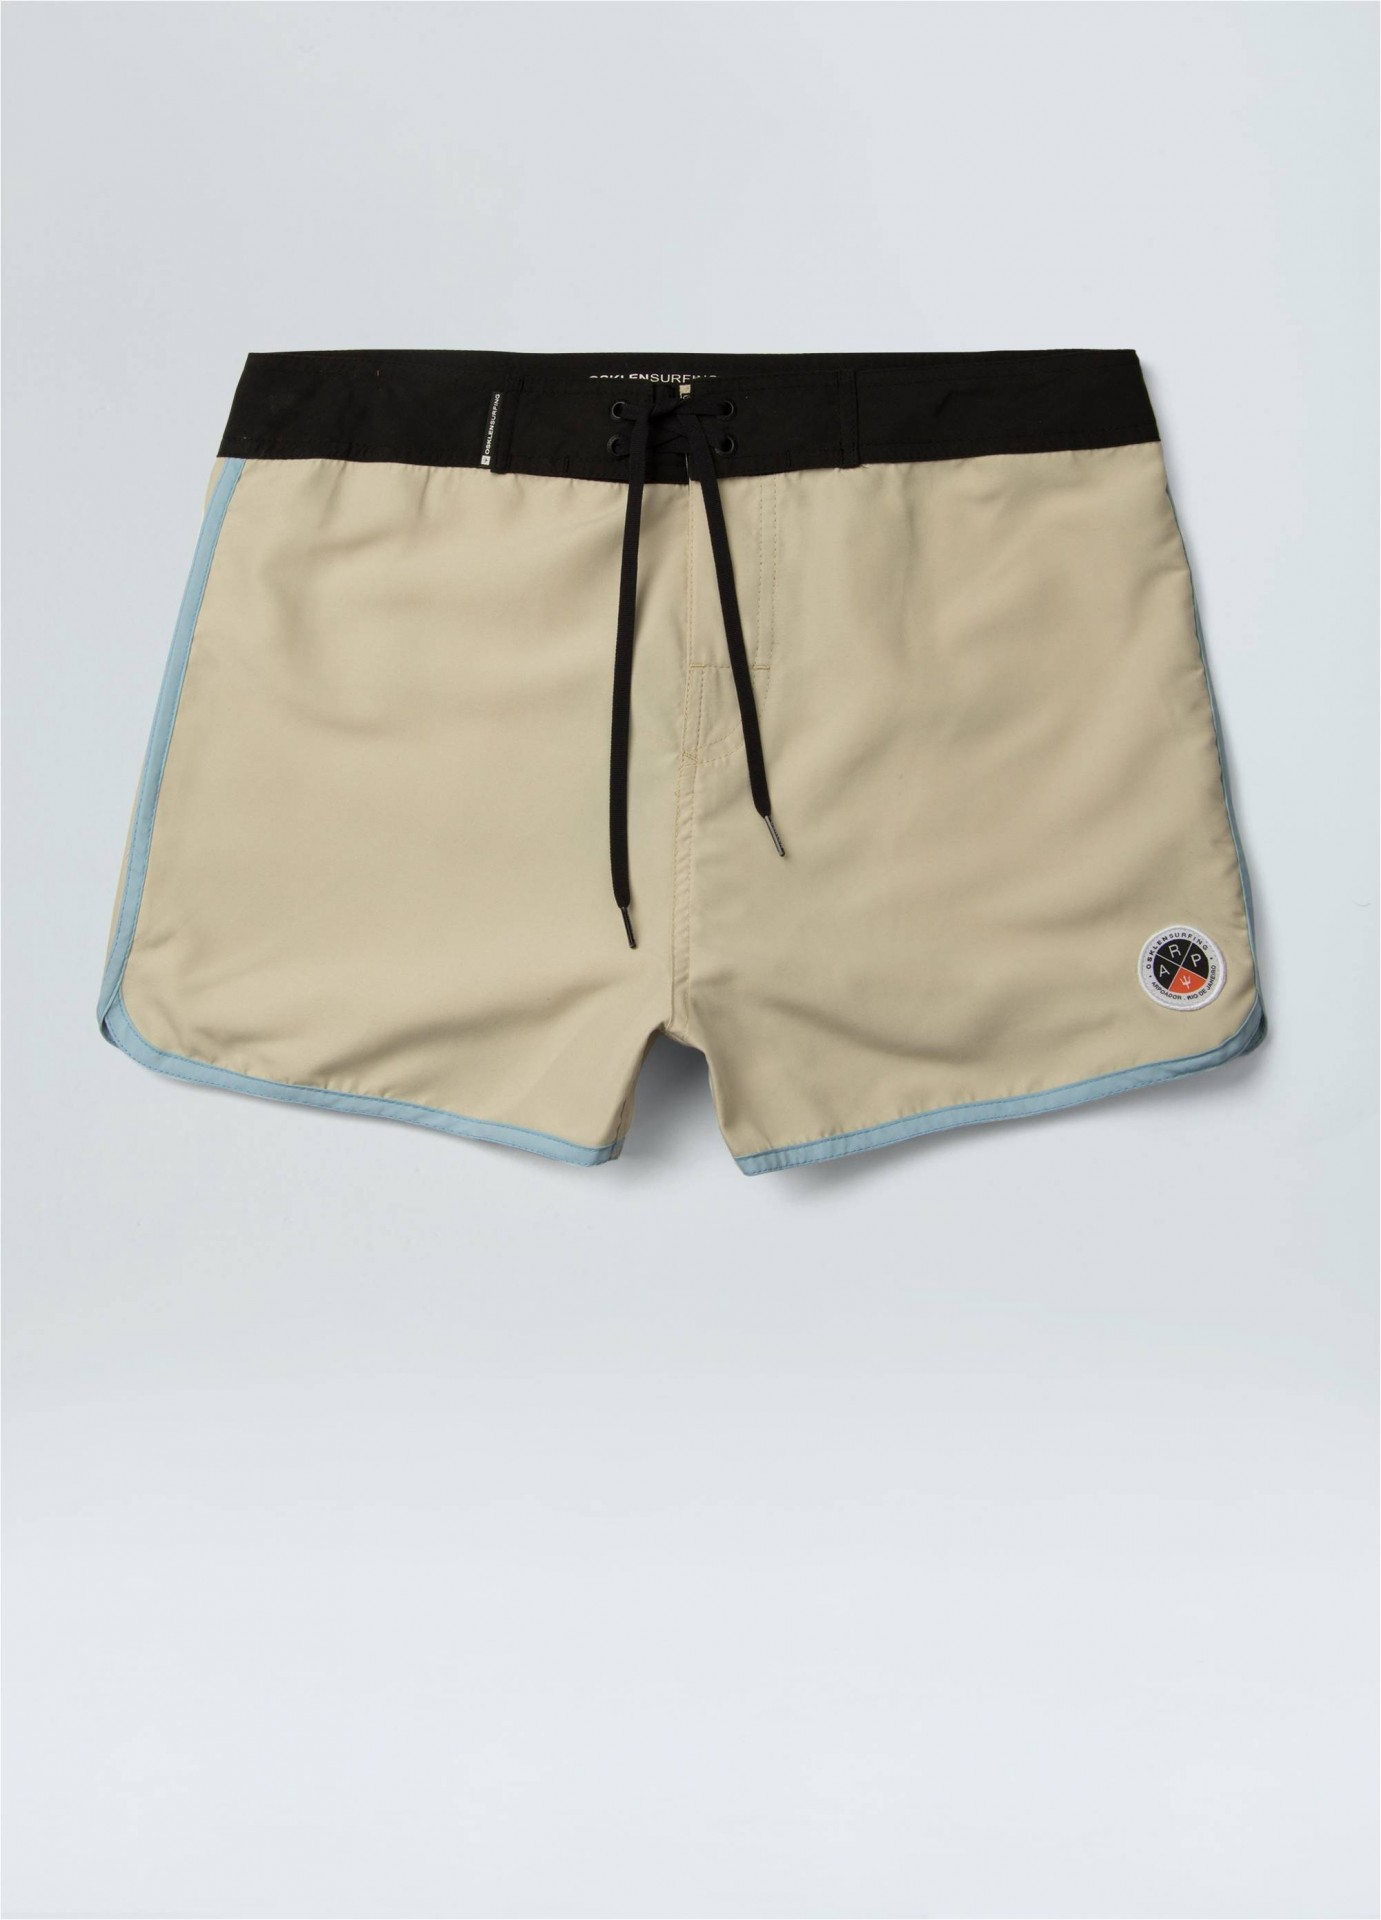 SHORTS SURF AQUALIGHT OSKLEN